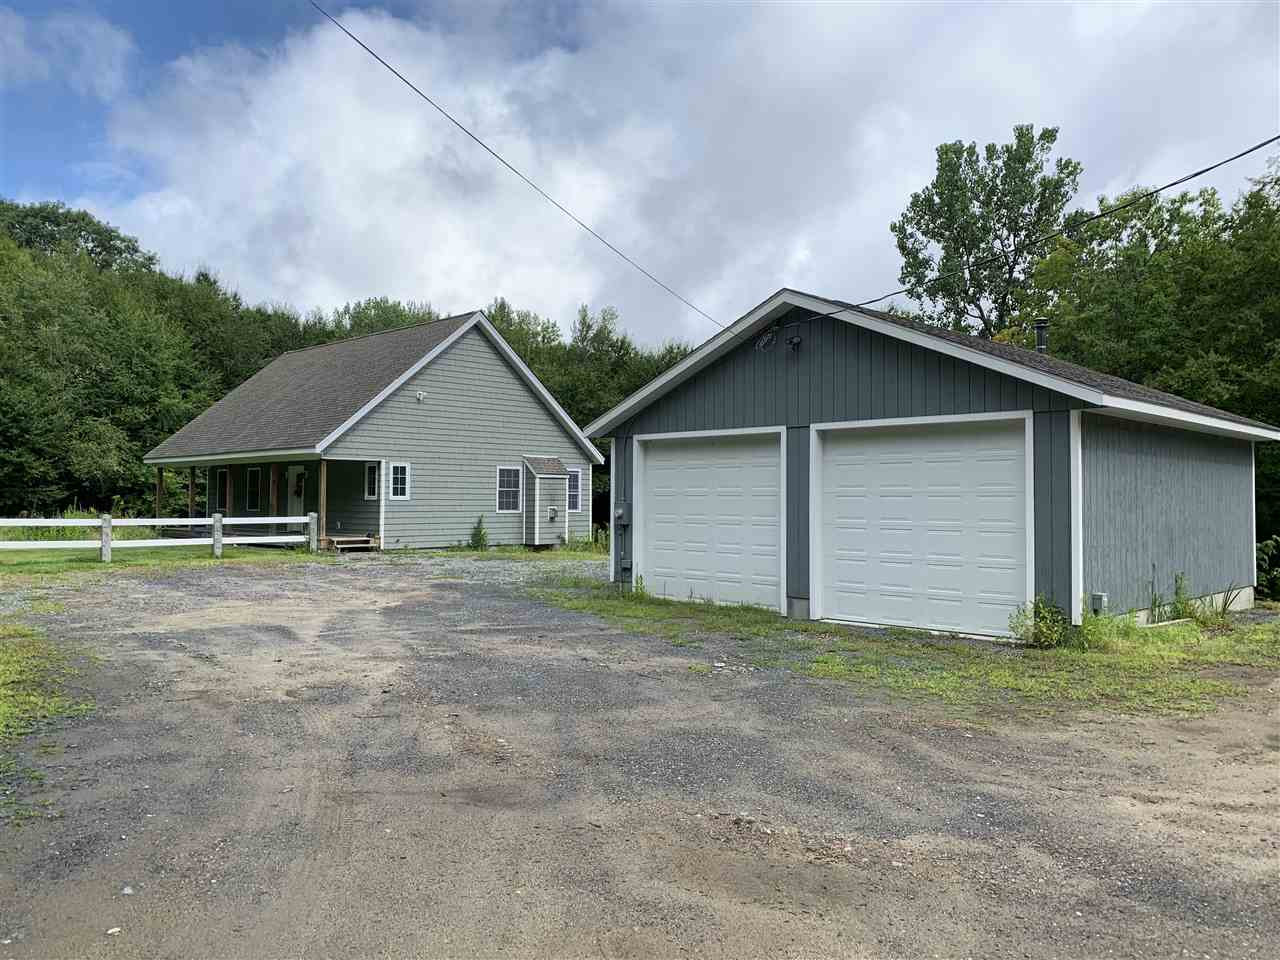 MLS 4769251: 26 Venable Road, Harrisville NH